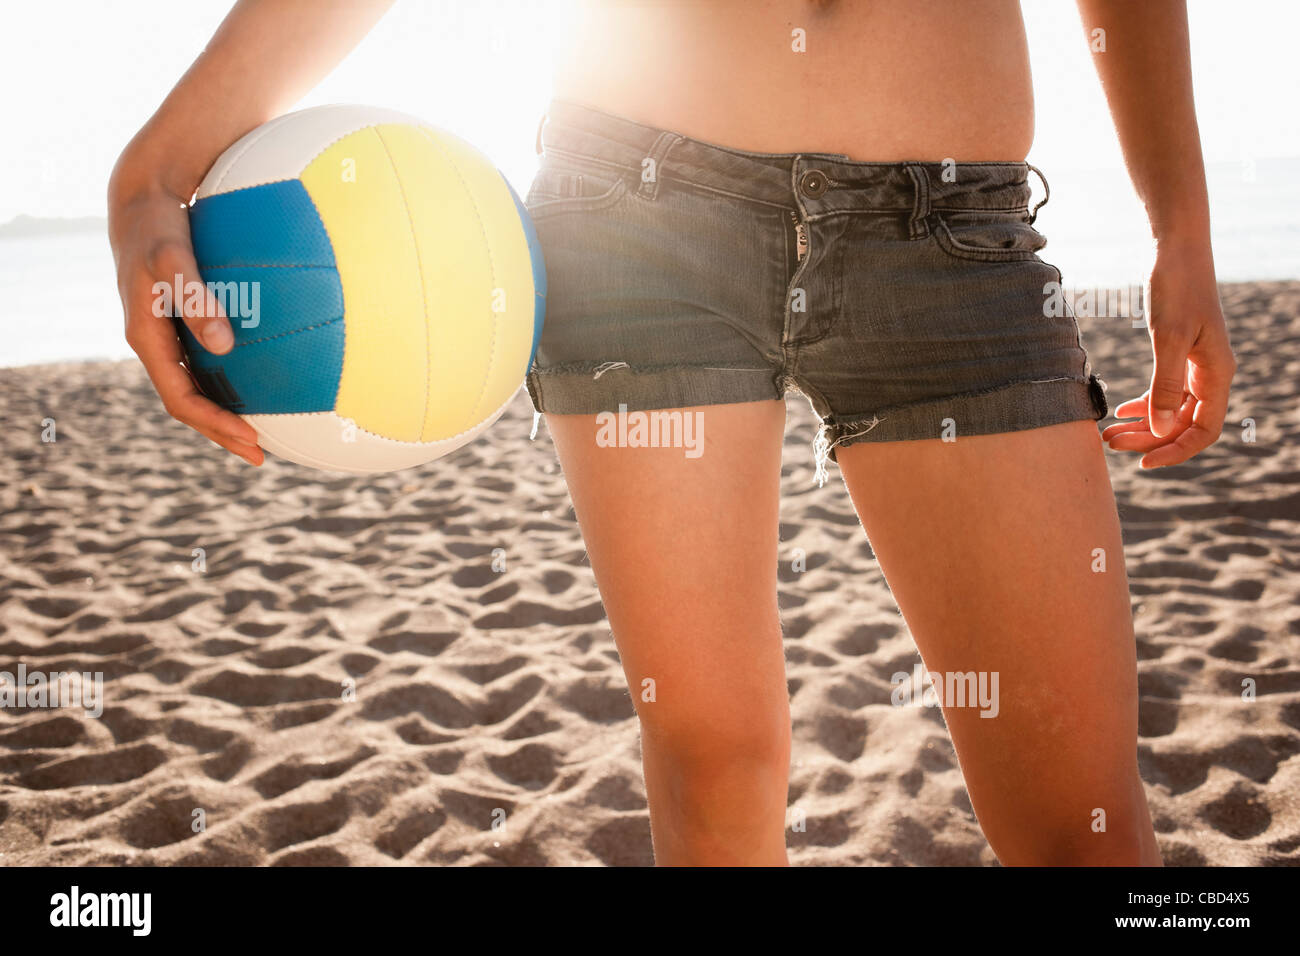 Woman holding volleyball on beach - Stock Image